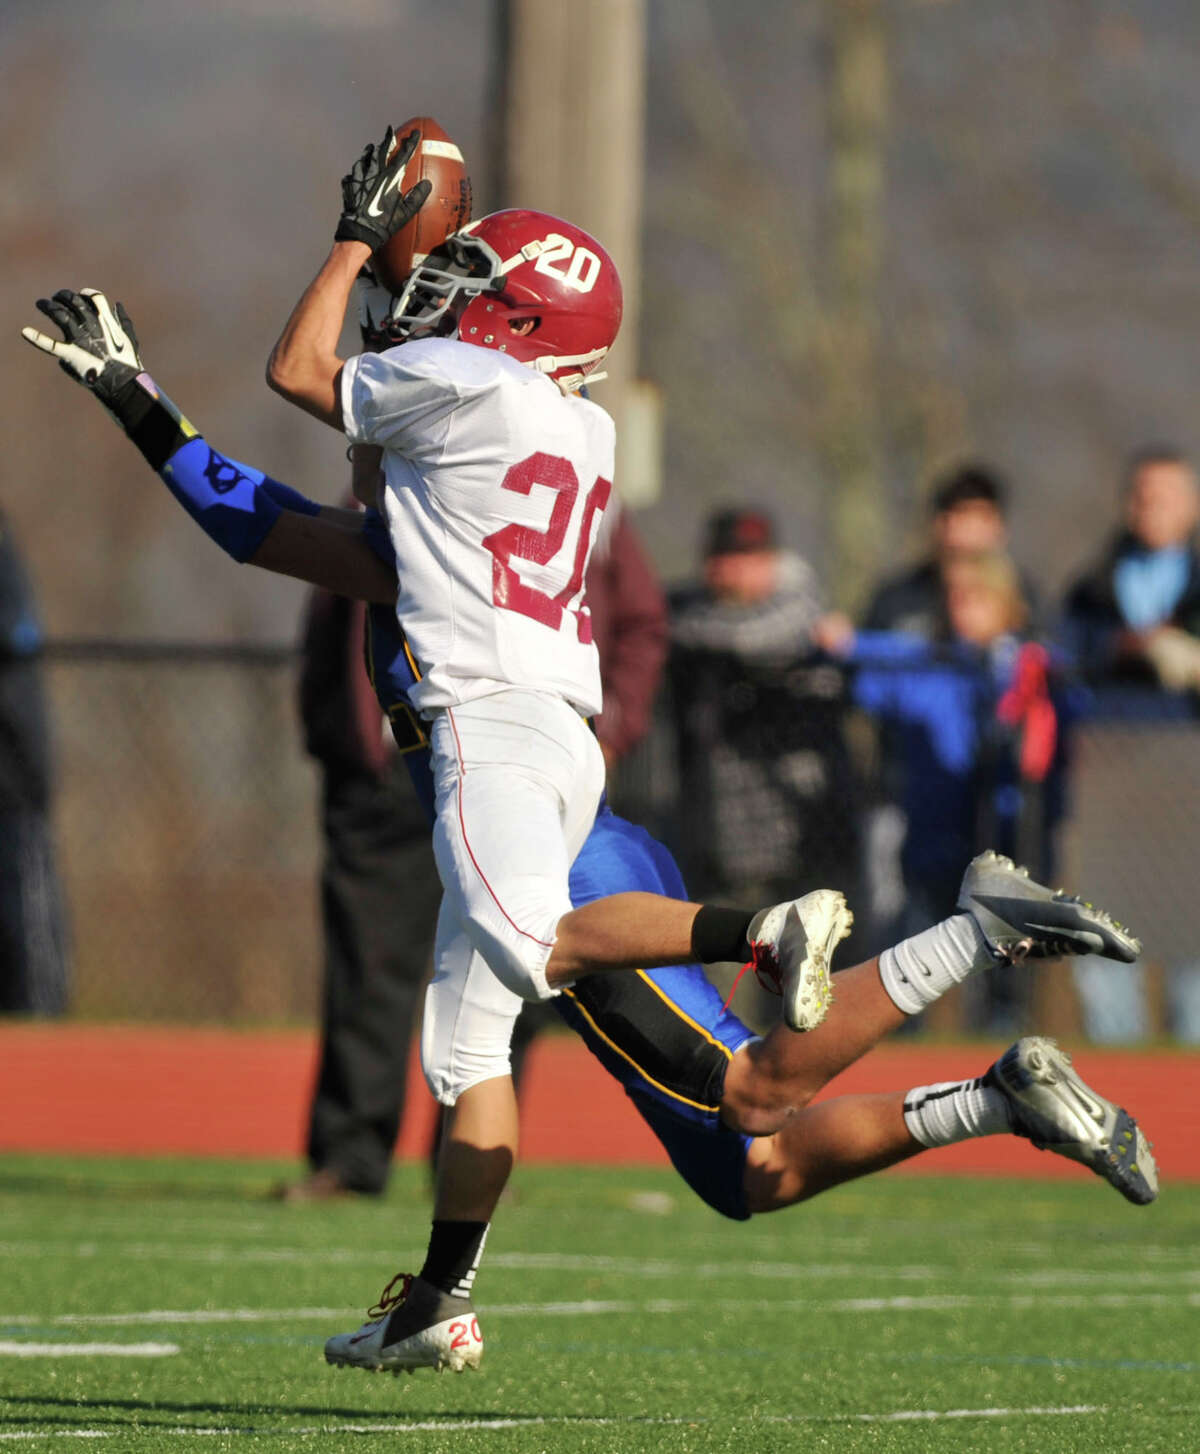 Bethel's James Giannone intercepts the ball from Brookfield's Liam Clancy during their game at Brookfield High School on Thursday, Nov. 22, 2012.